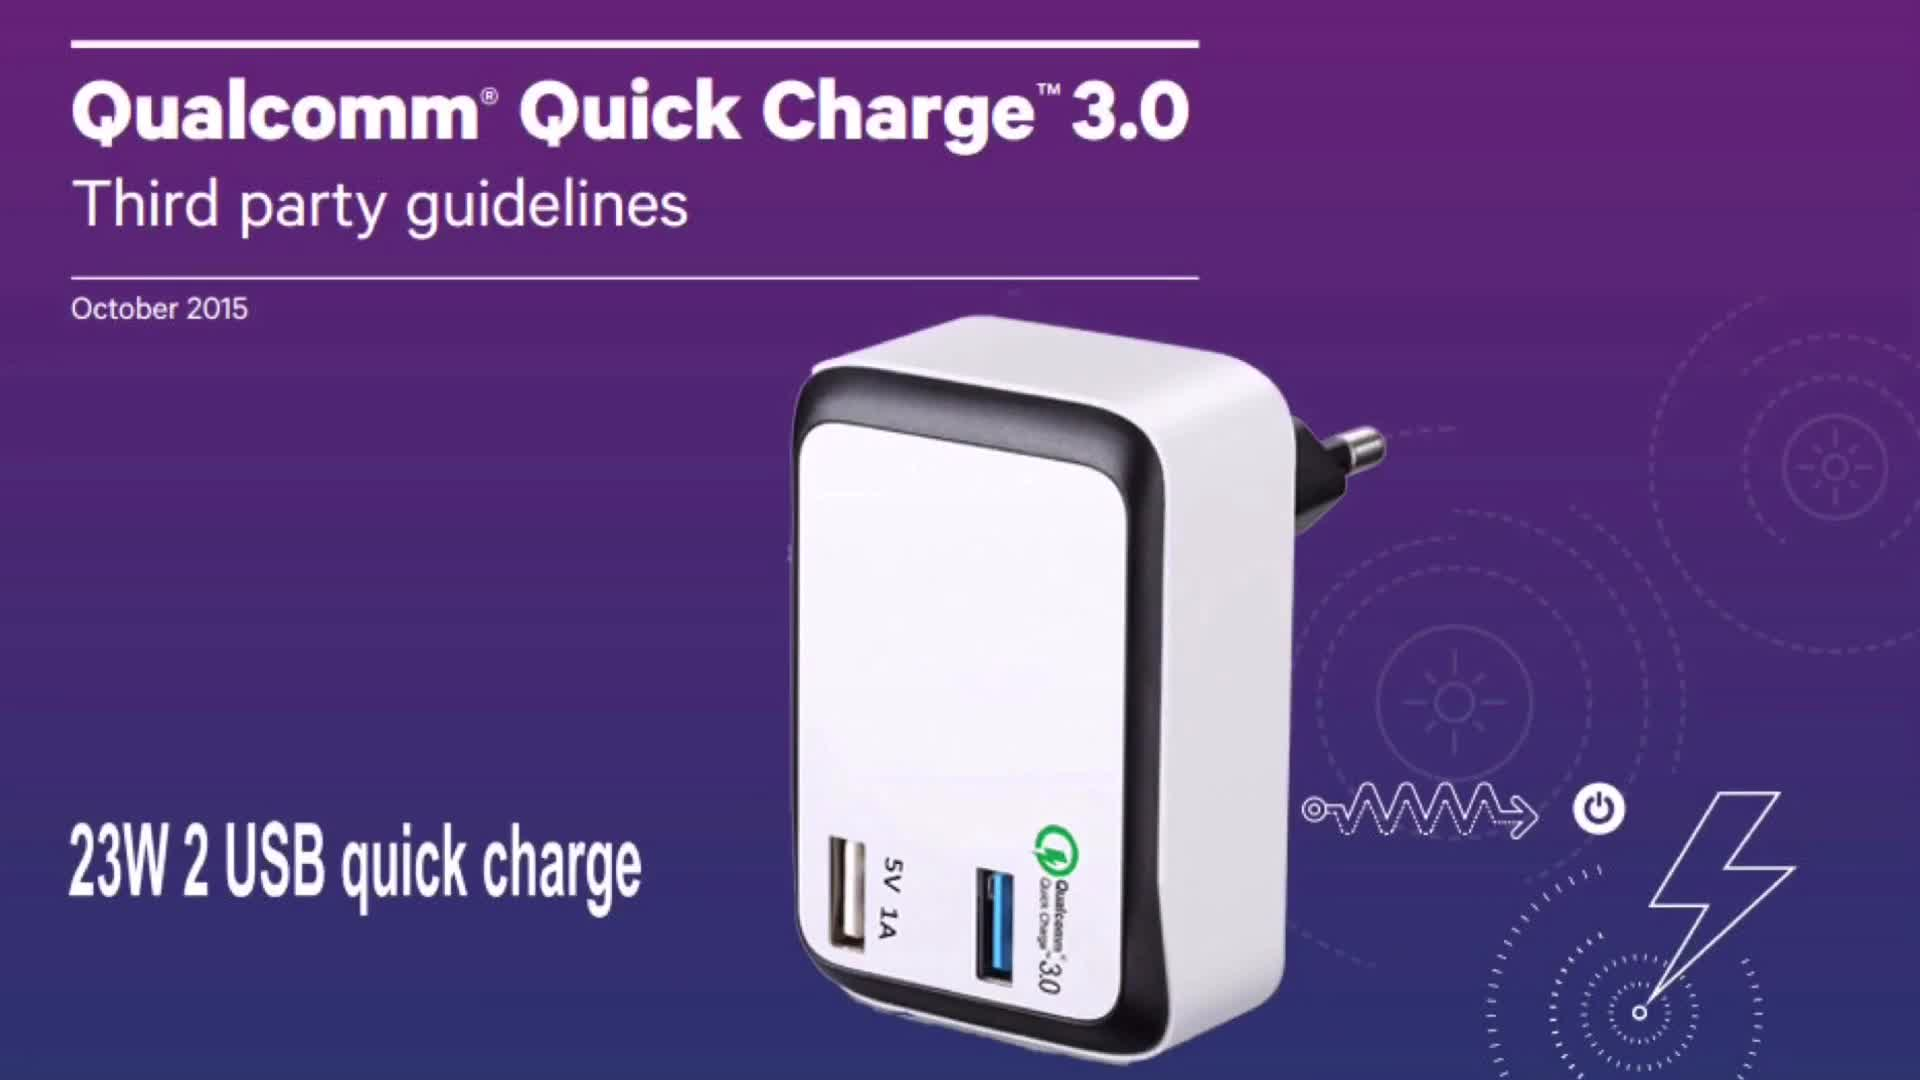 Kc Qualcomm Certified Dual Port High Power Quick Charge 3.0 Wall Charger Made In China